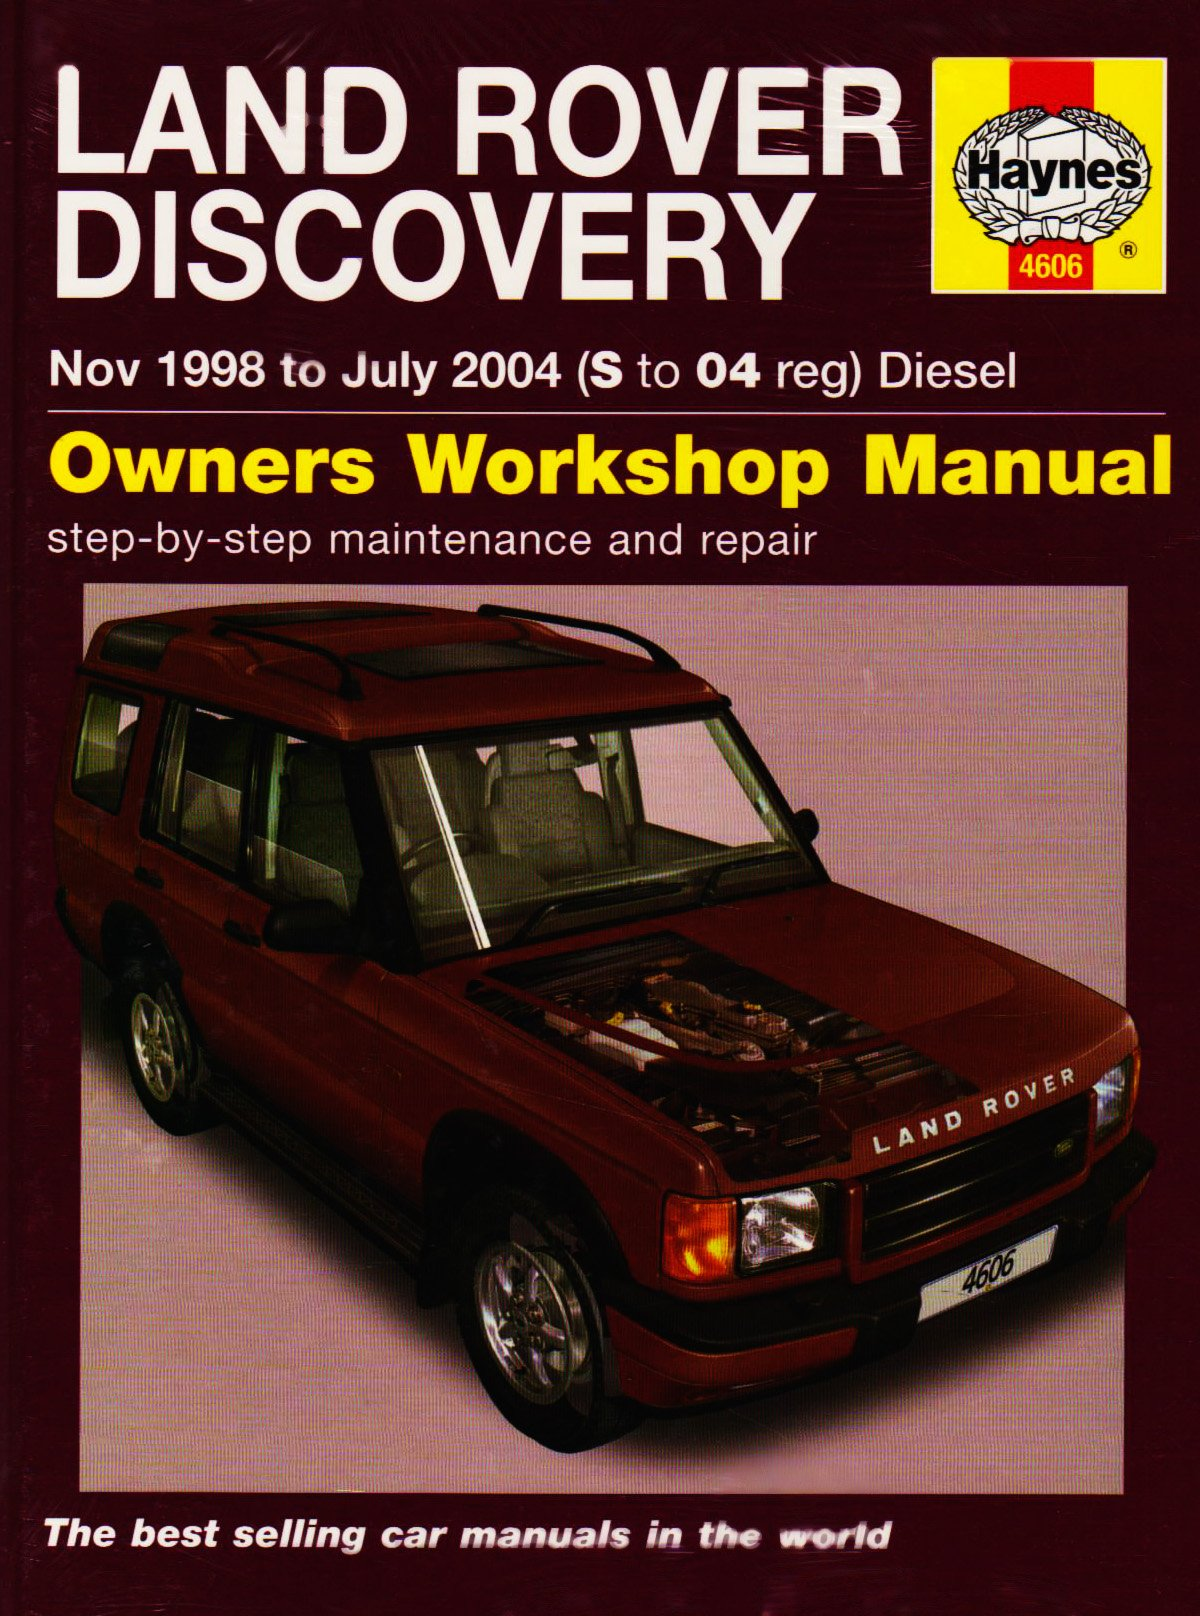 Land Rover Discovery Diesel Service And Repair Manual 1998 To 2004 Parts Diagram Wiring Schematic Haynes Martynn Randall 9781844256068 Books